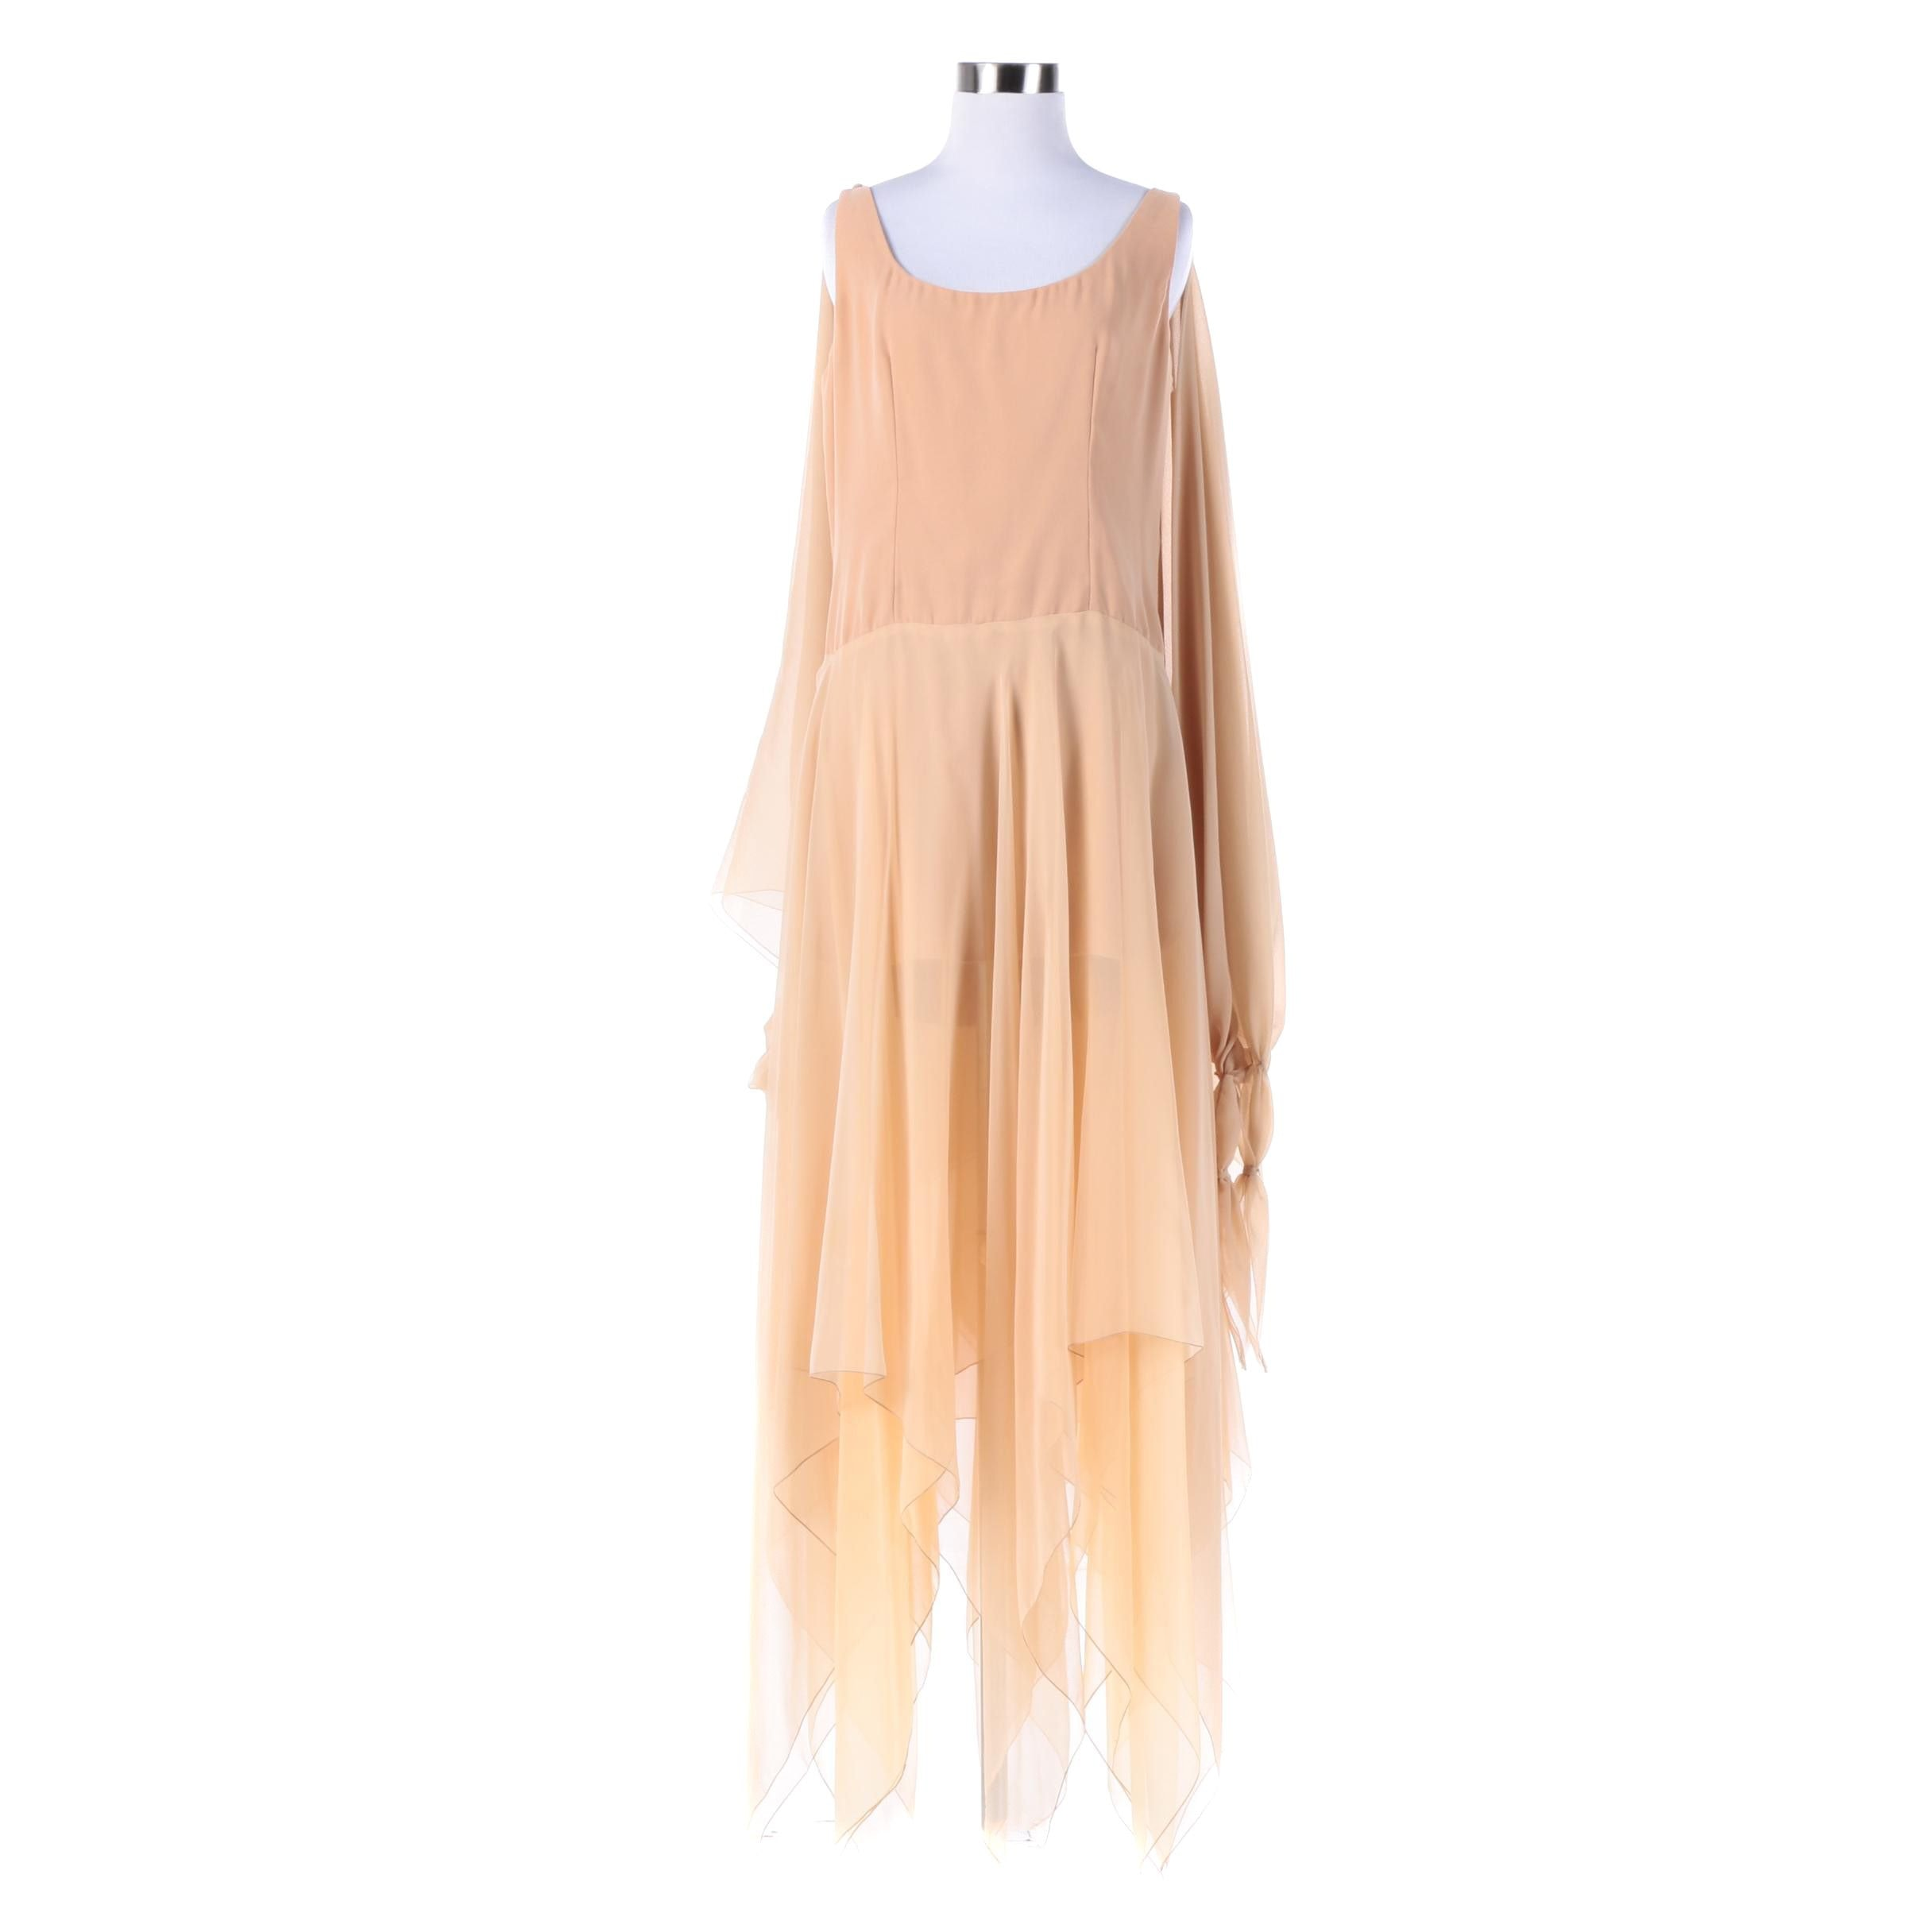 1970s Vintage Bob Mackie Ray Aghayan Peach Chiffon Grecian Drape Evening Dress